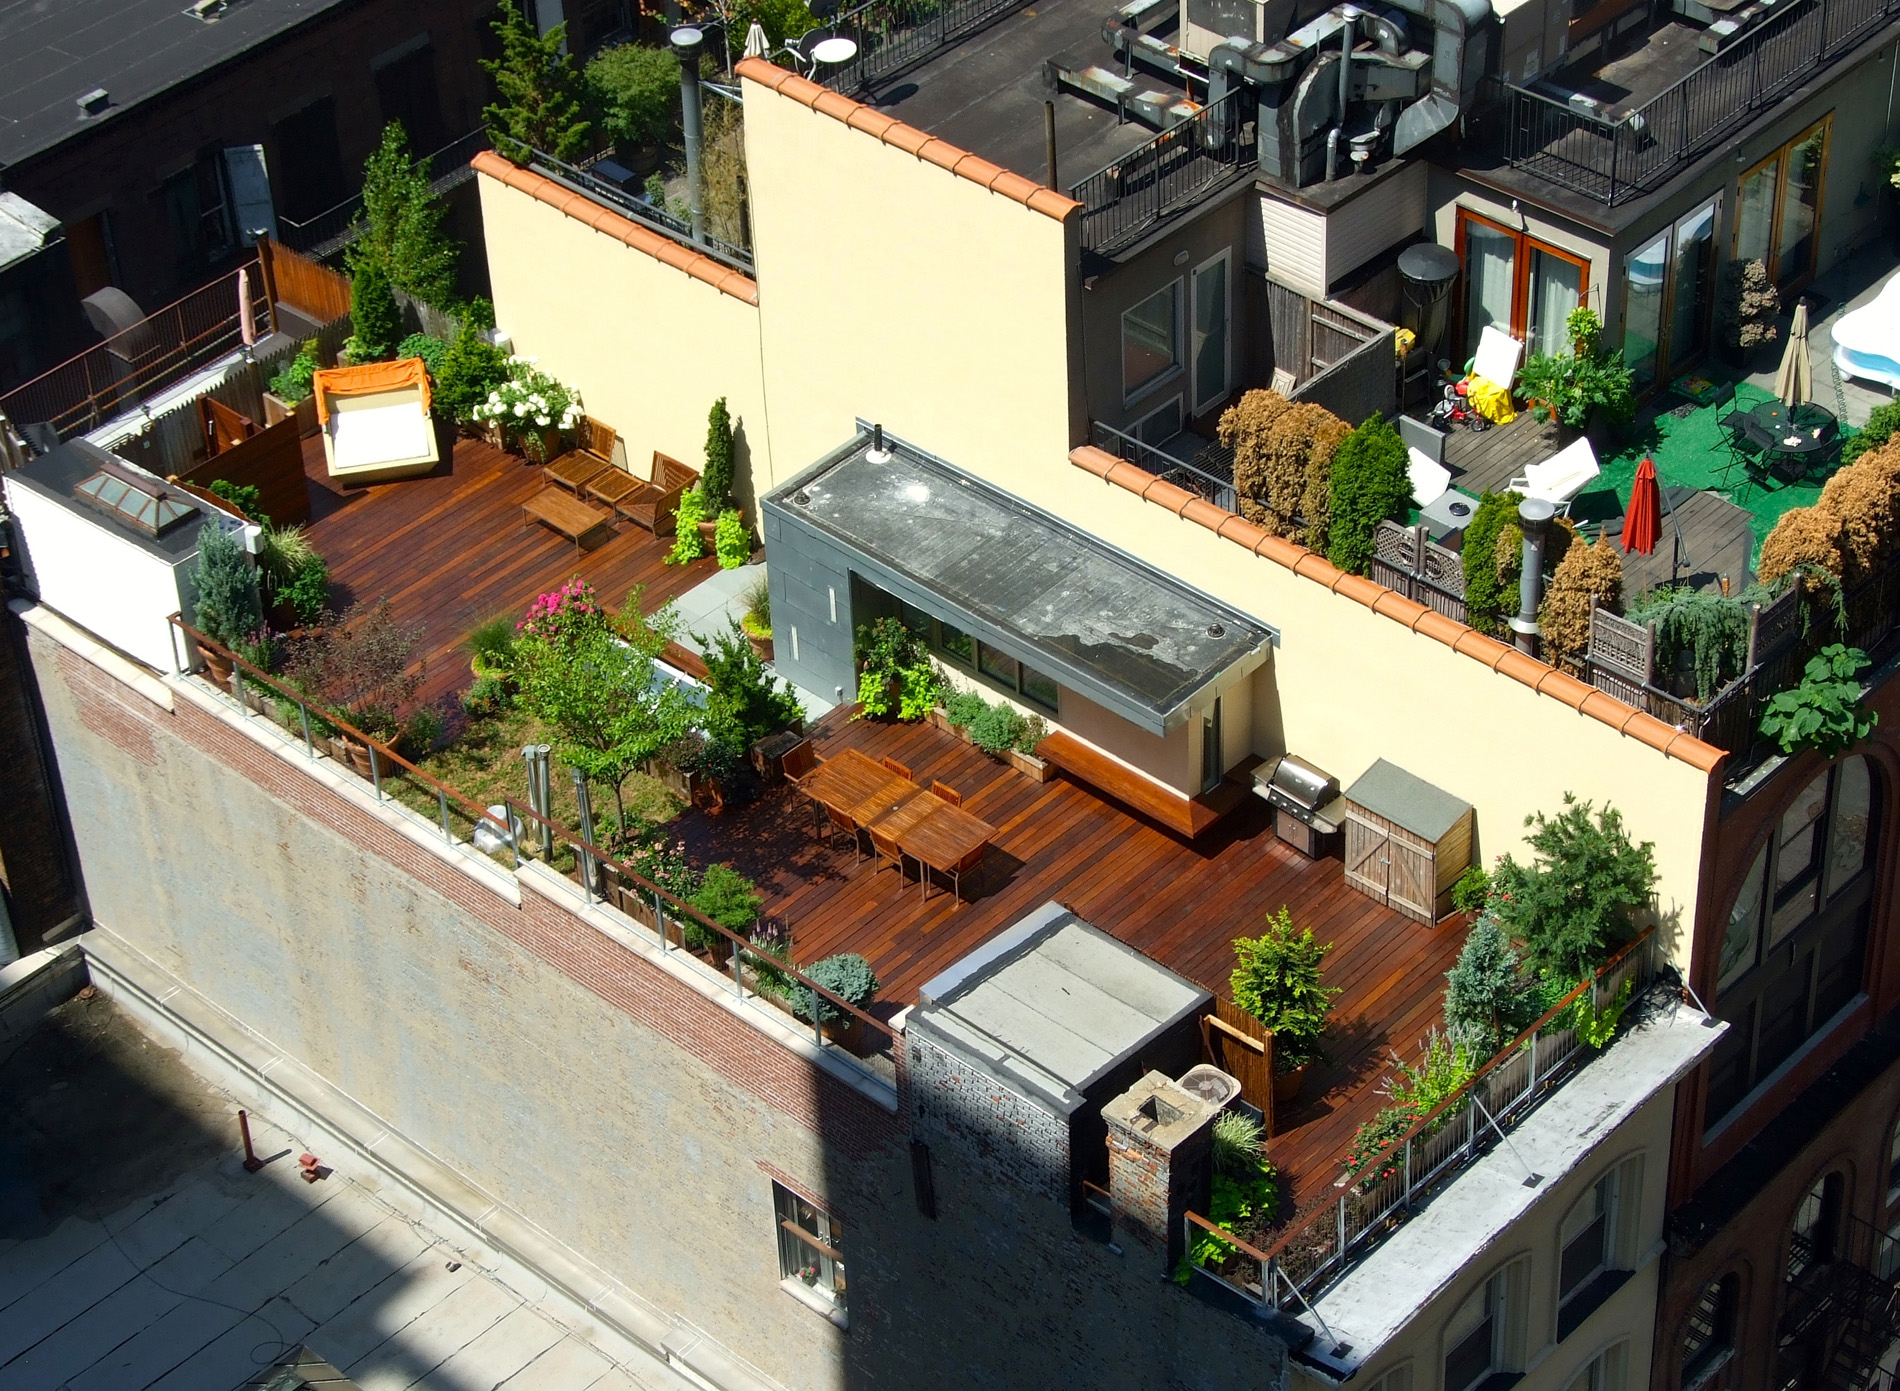 Rooftop terrace decks all decked out for Terrace design